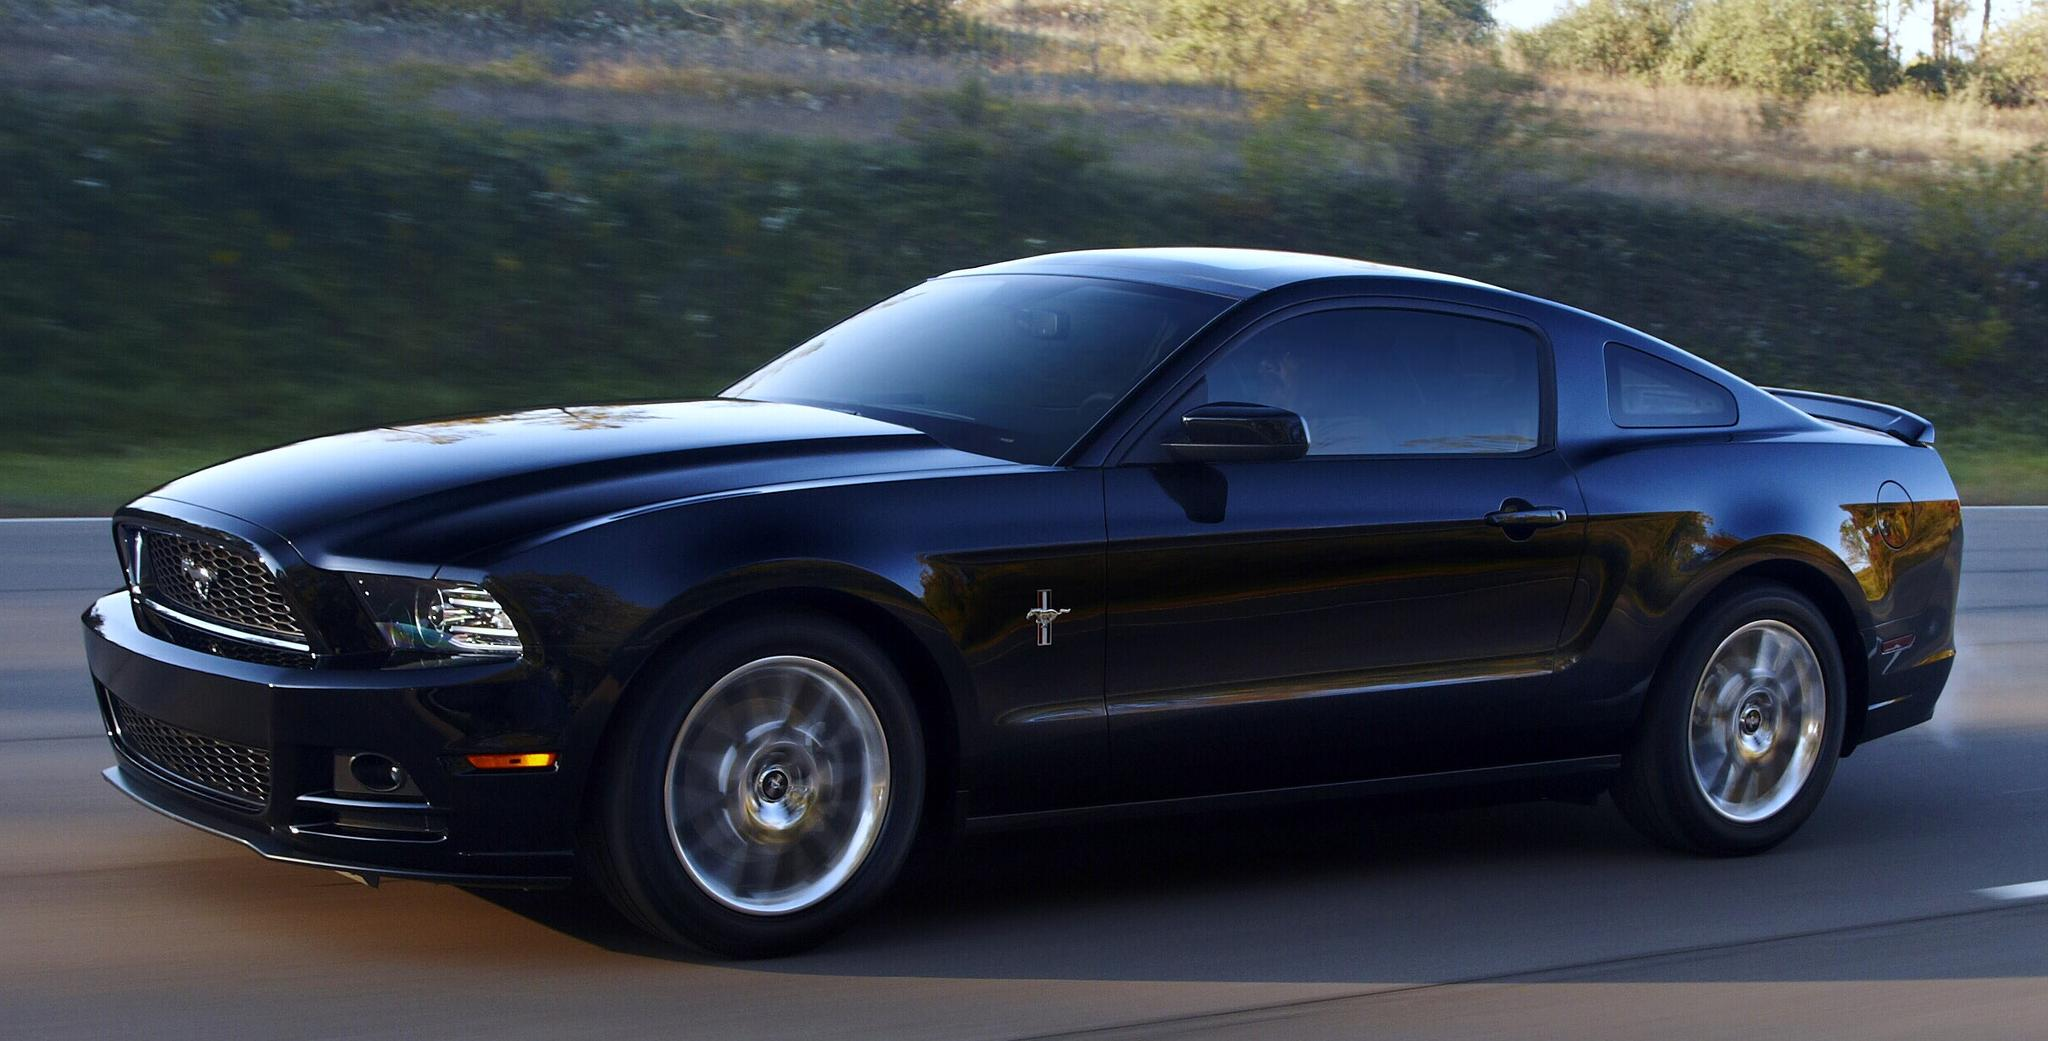 2013 Ford Mustang GT Wallpaper For Ipad